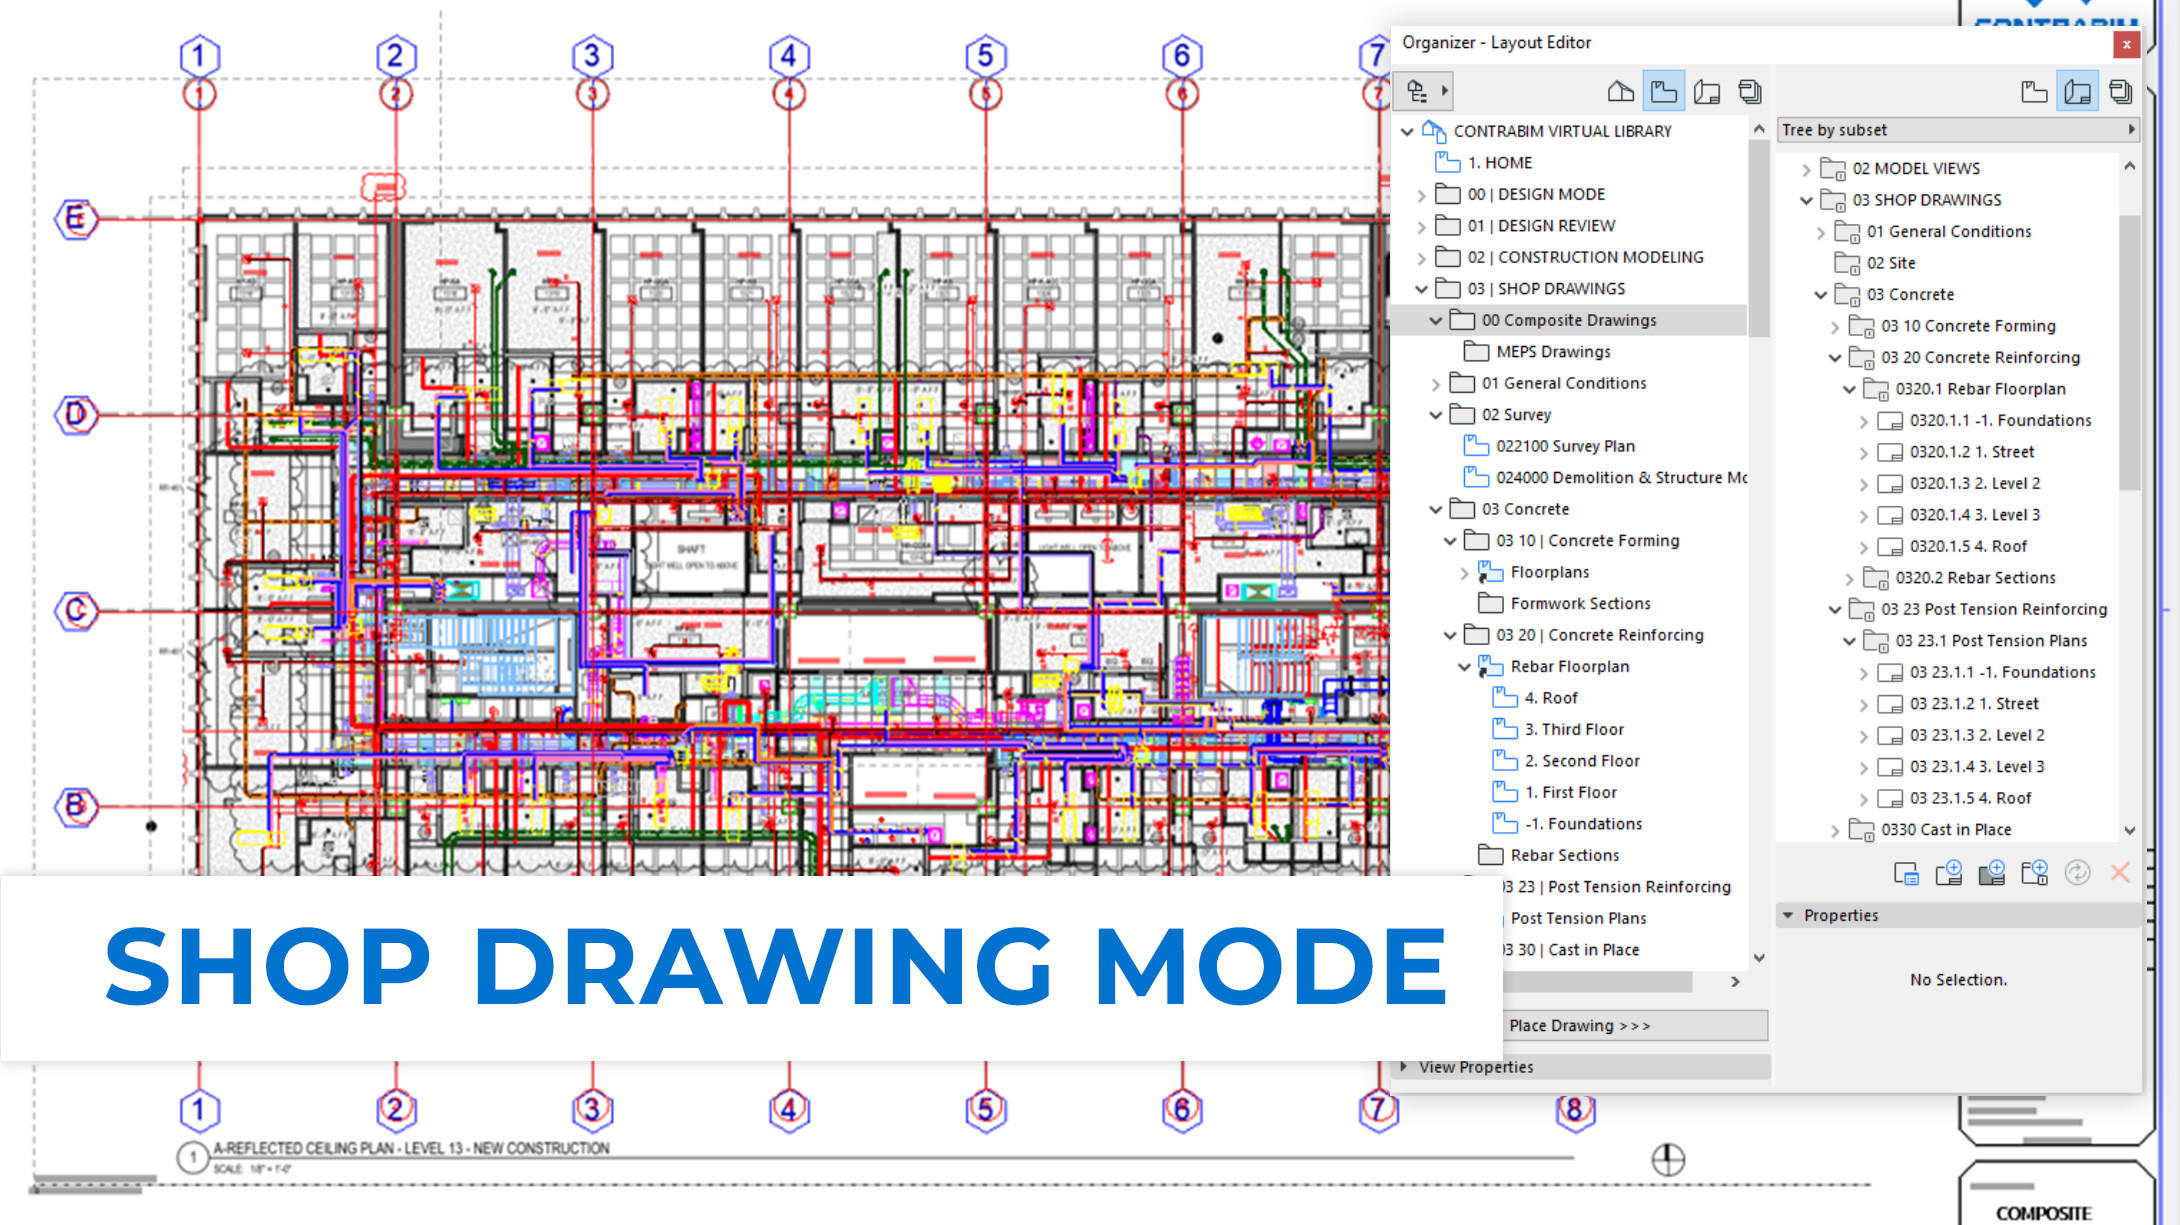 CONTRABIM Shop Drawing Mode